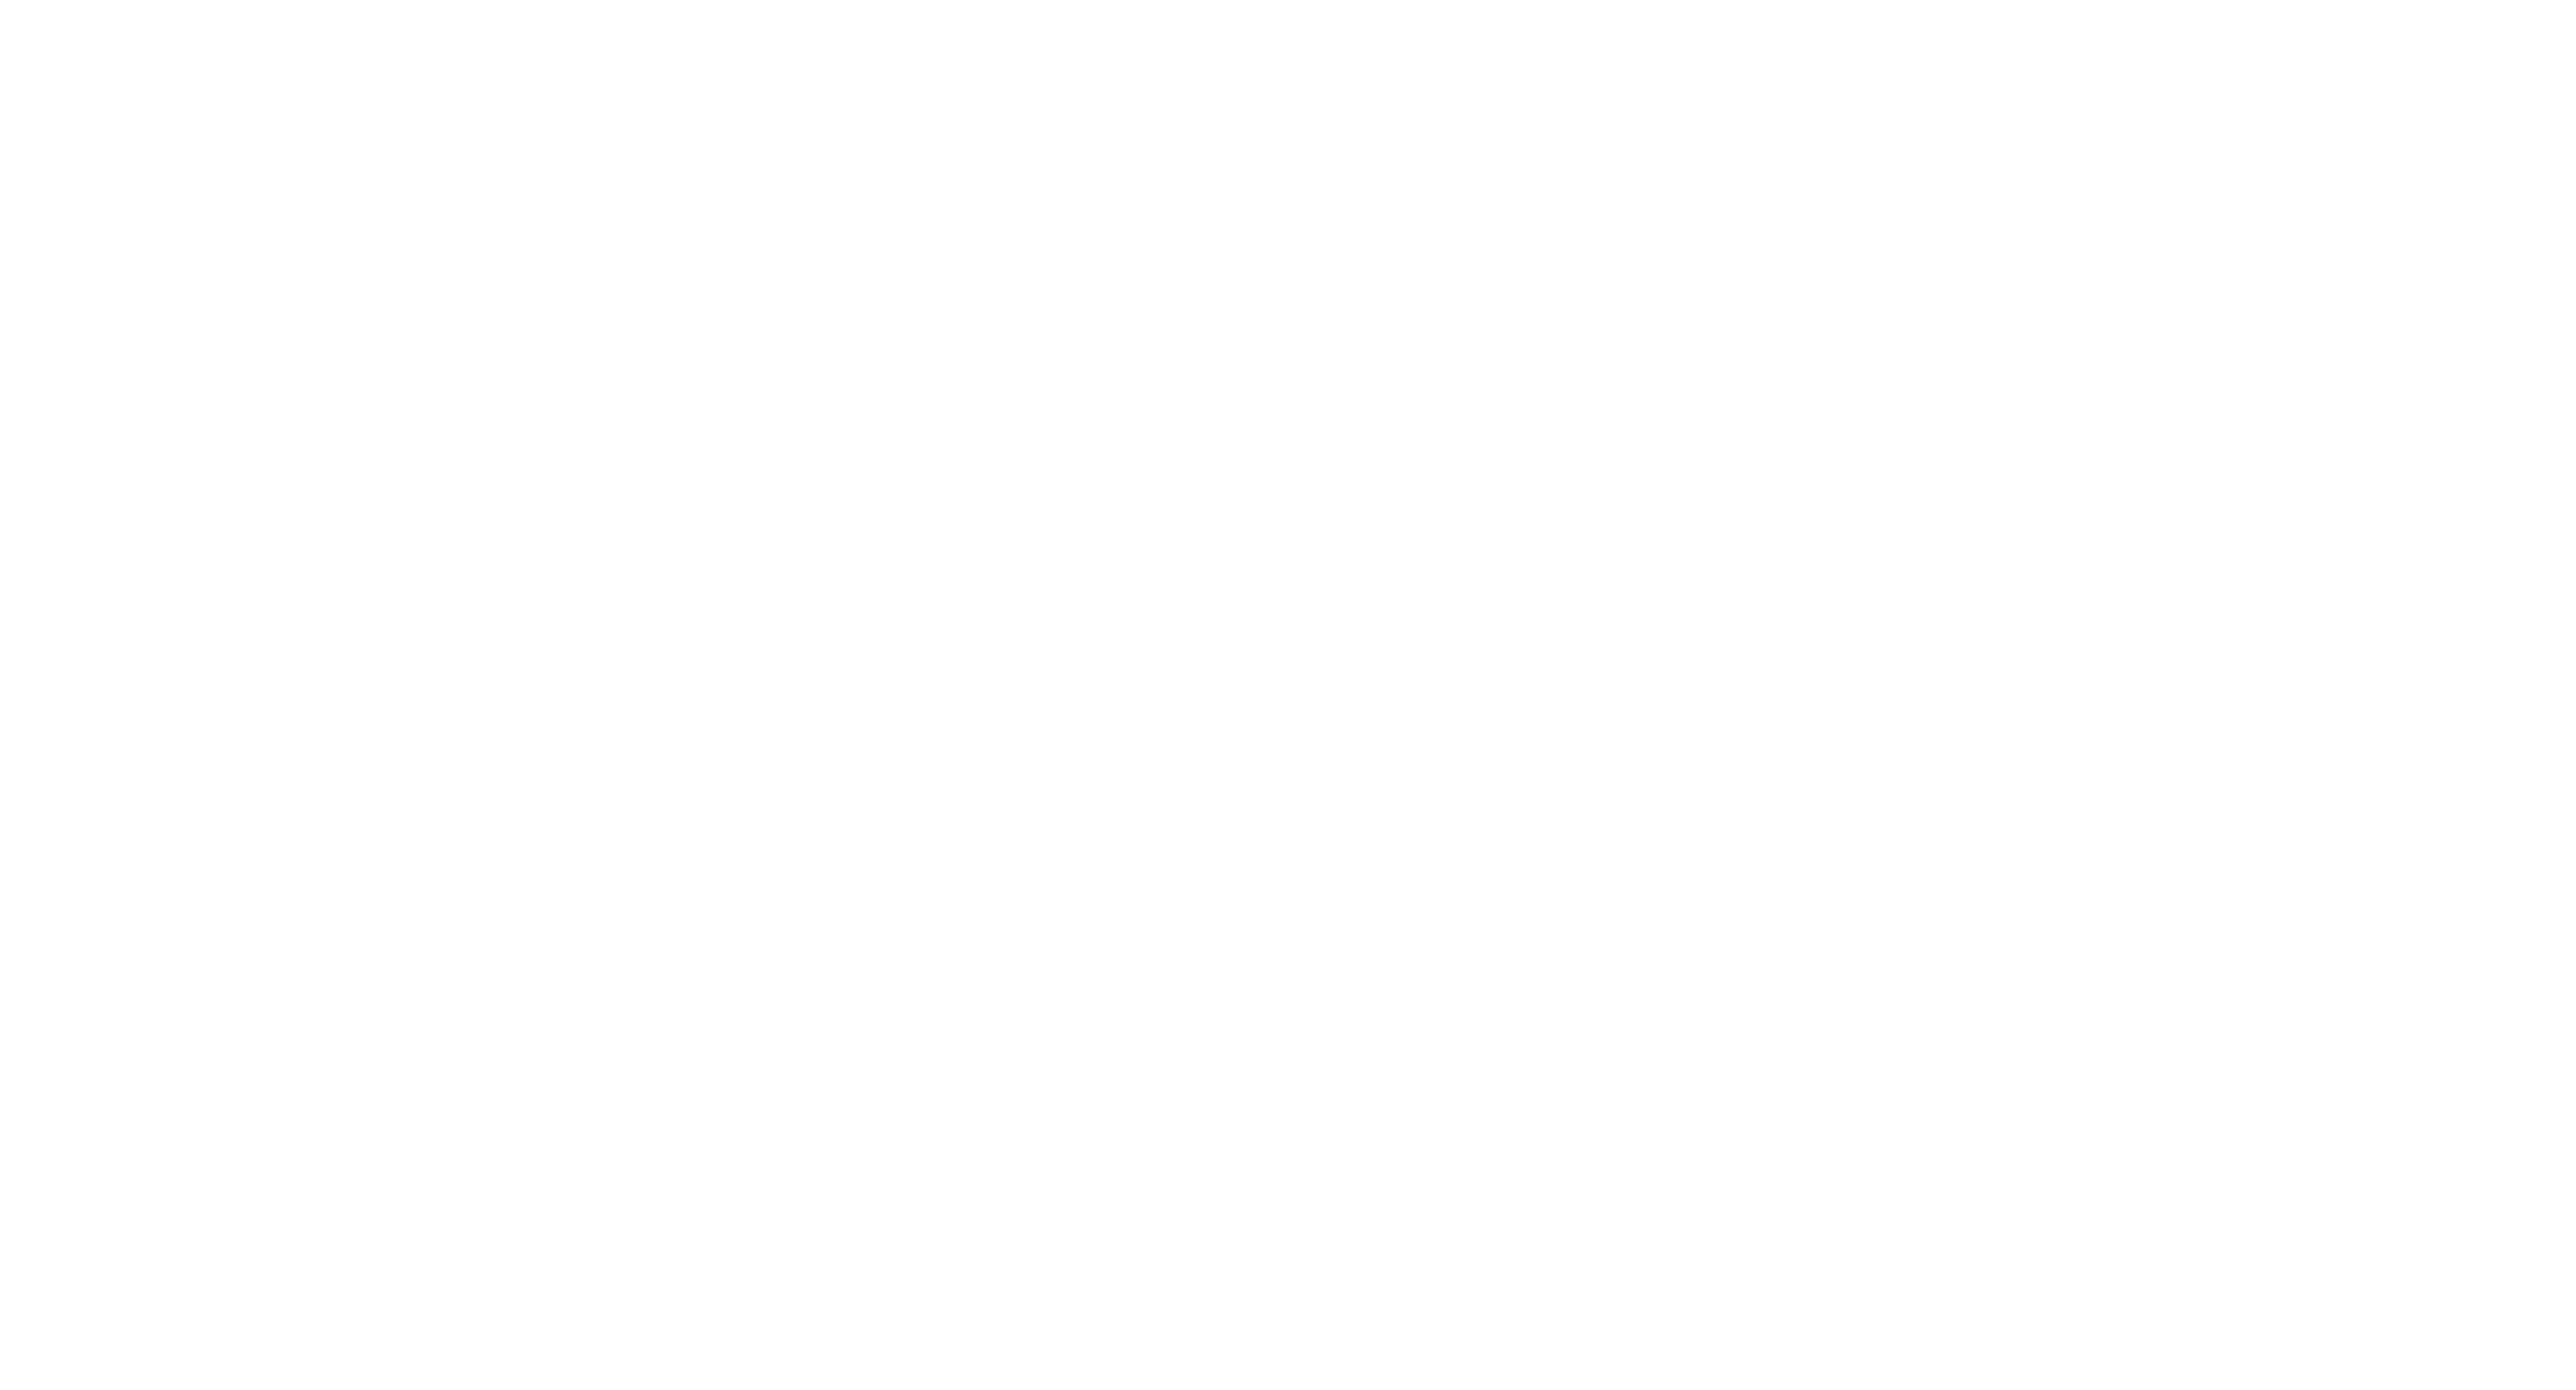 East Hampshire Liberal Democrats